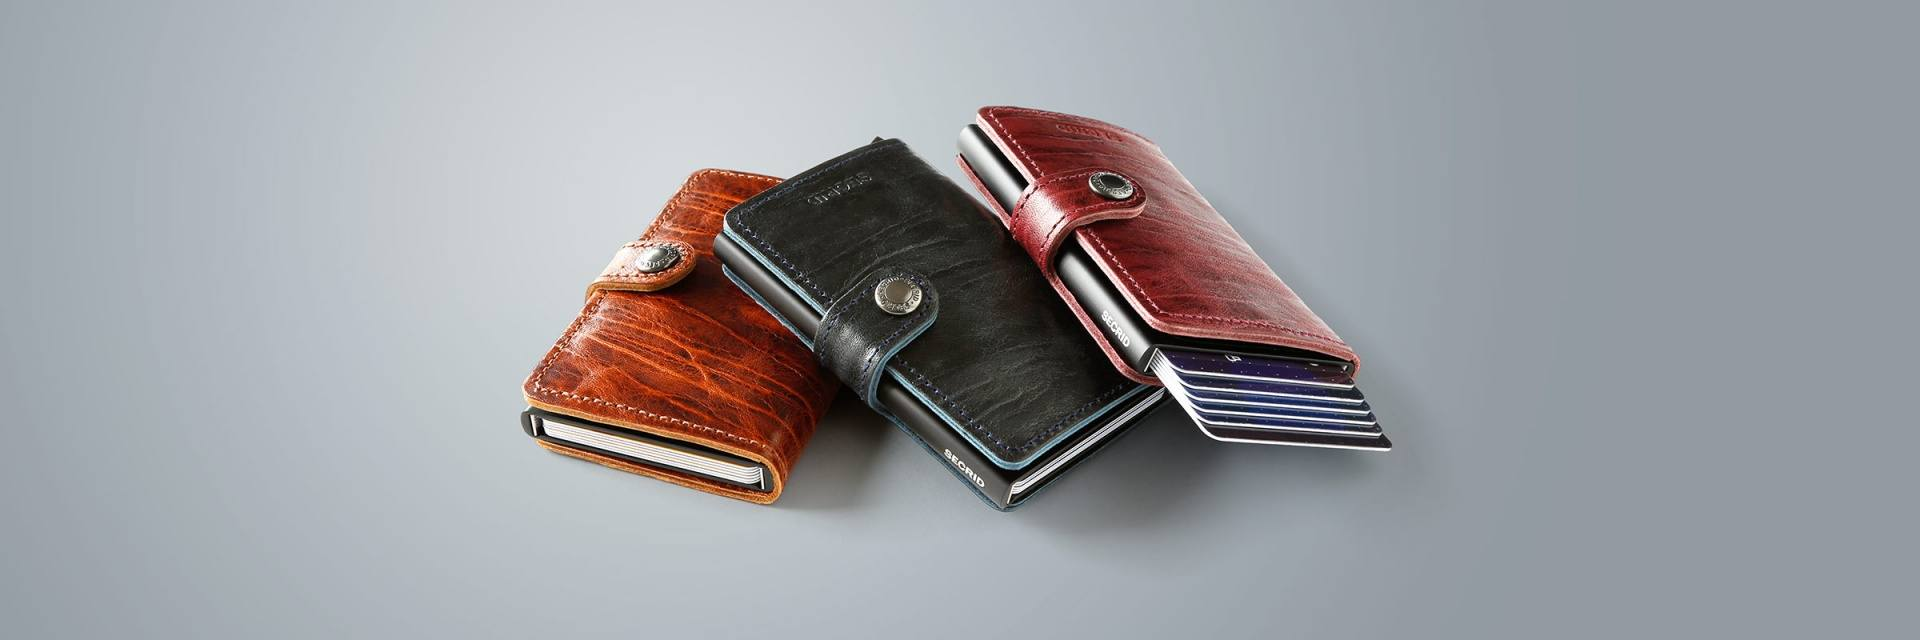 01-SECRID-Dutch-Martin-Minwallet